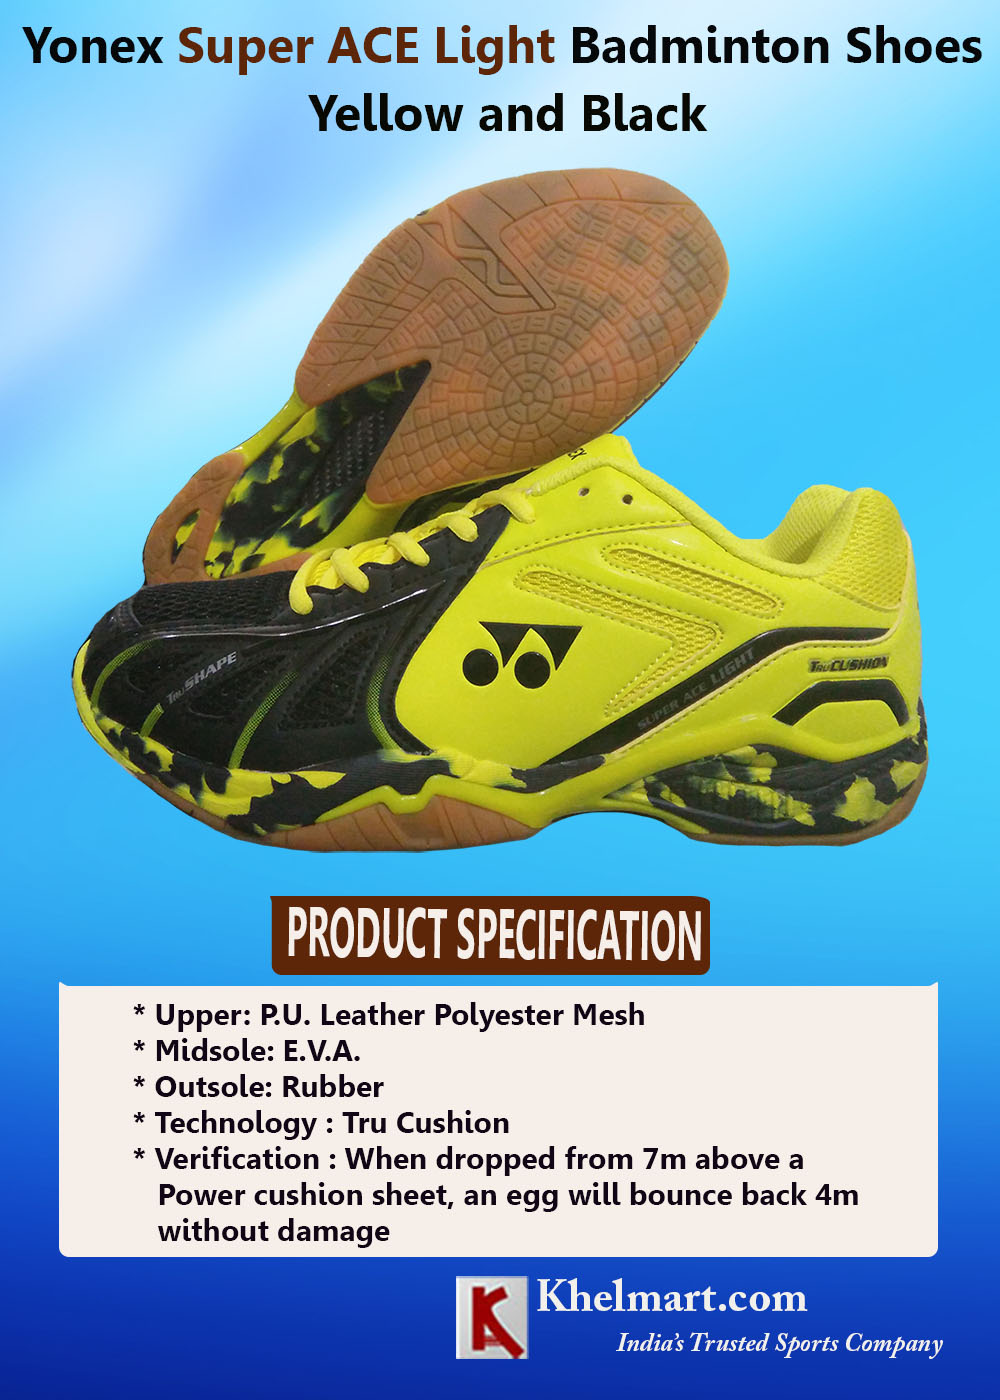 Yonex-Super-ACE-Light-Badminton-Shoes-Yellow-and-Black.jpg